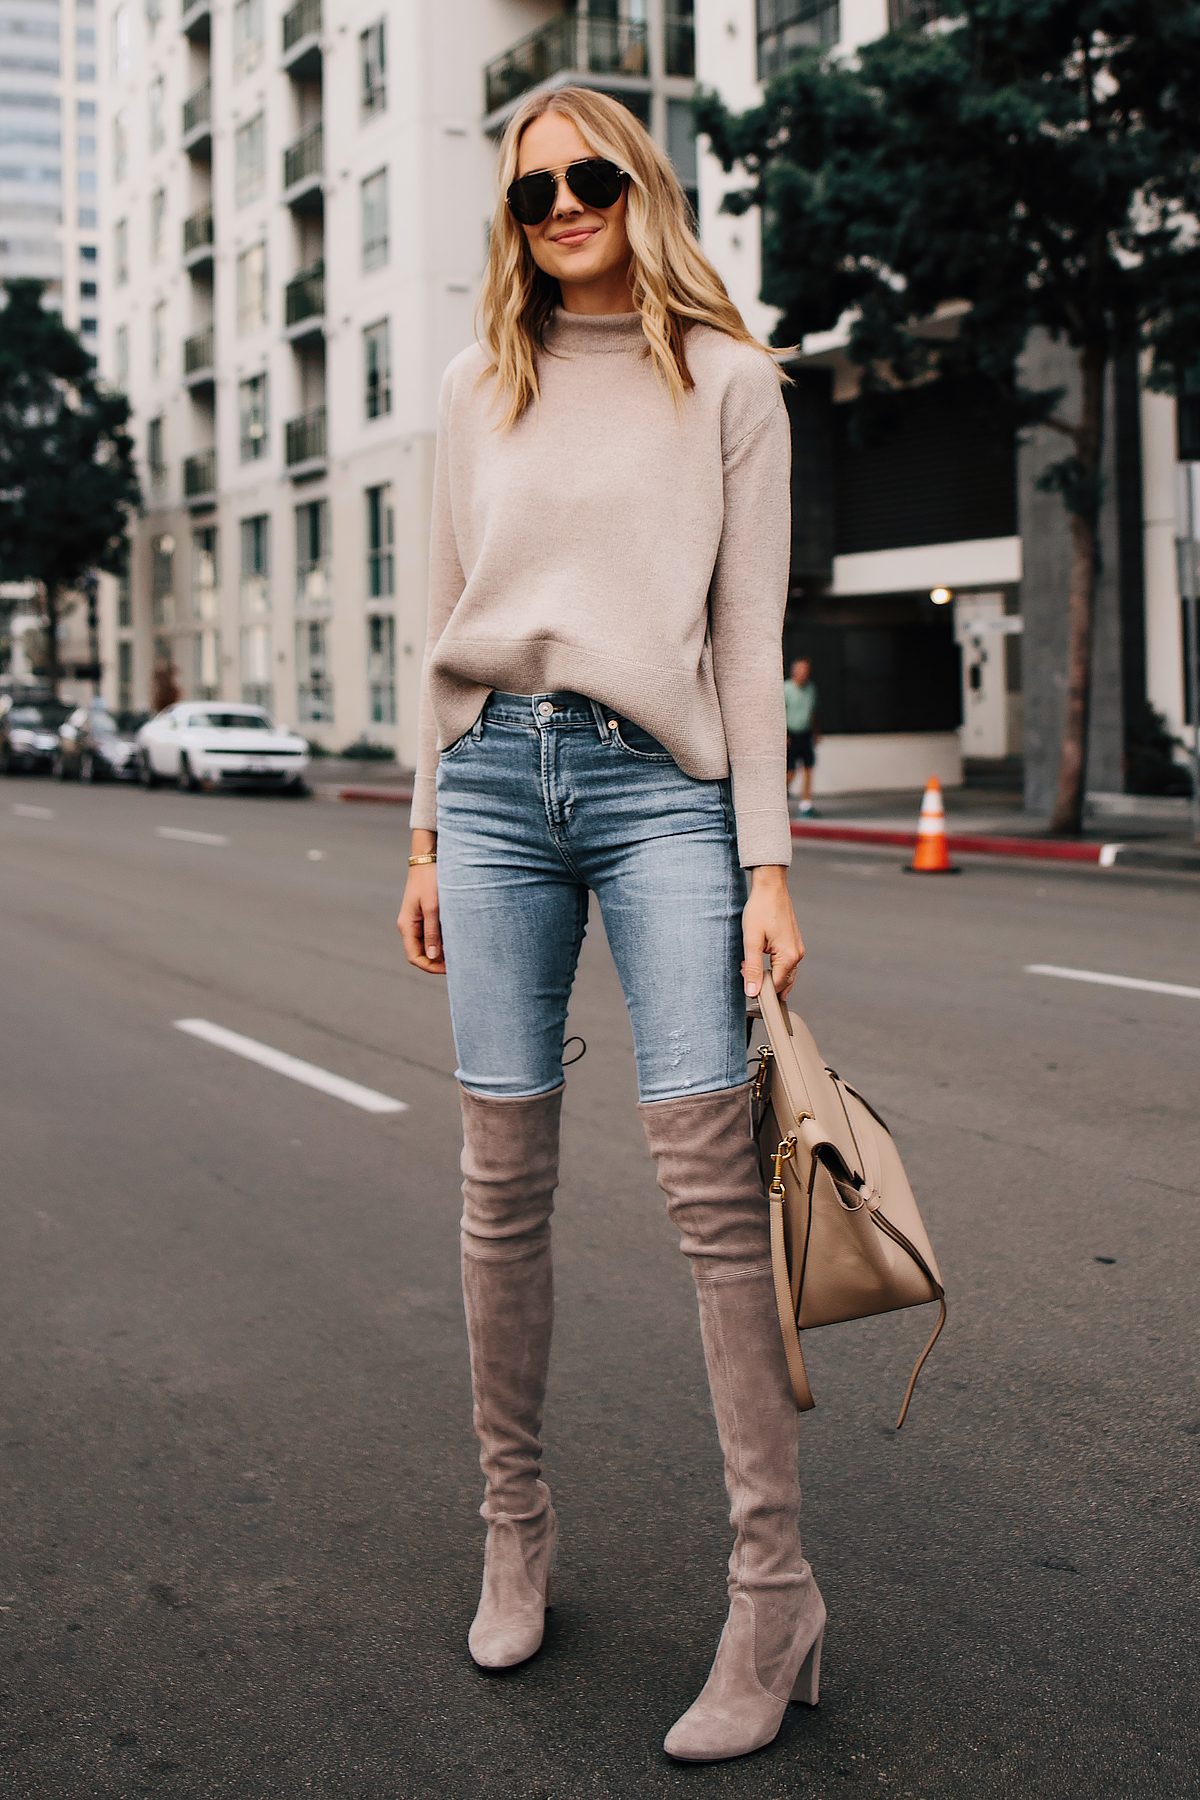 Blonde Woman Wearing Wearing Everlane Cashmere Sweater Denim Skinny Jeans Stuart Weitzman Taupe Over the Knee Boots Outfit Fashion Jackson San Diego Fashion Blogger Street Style